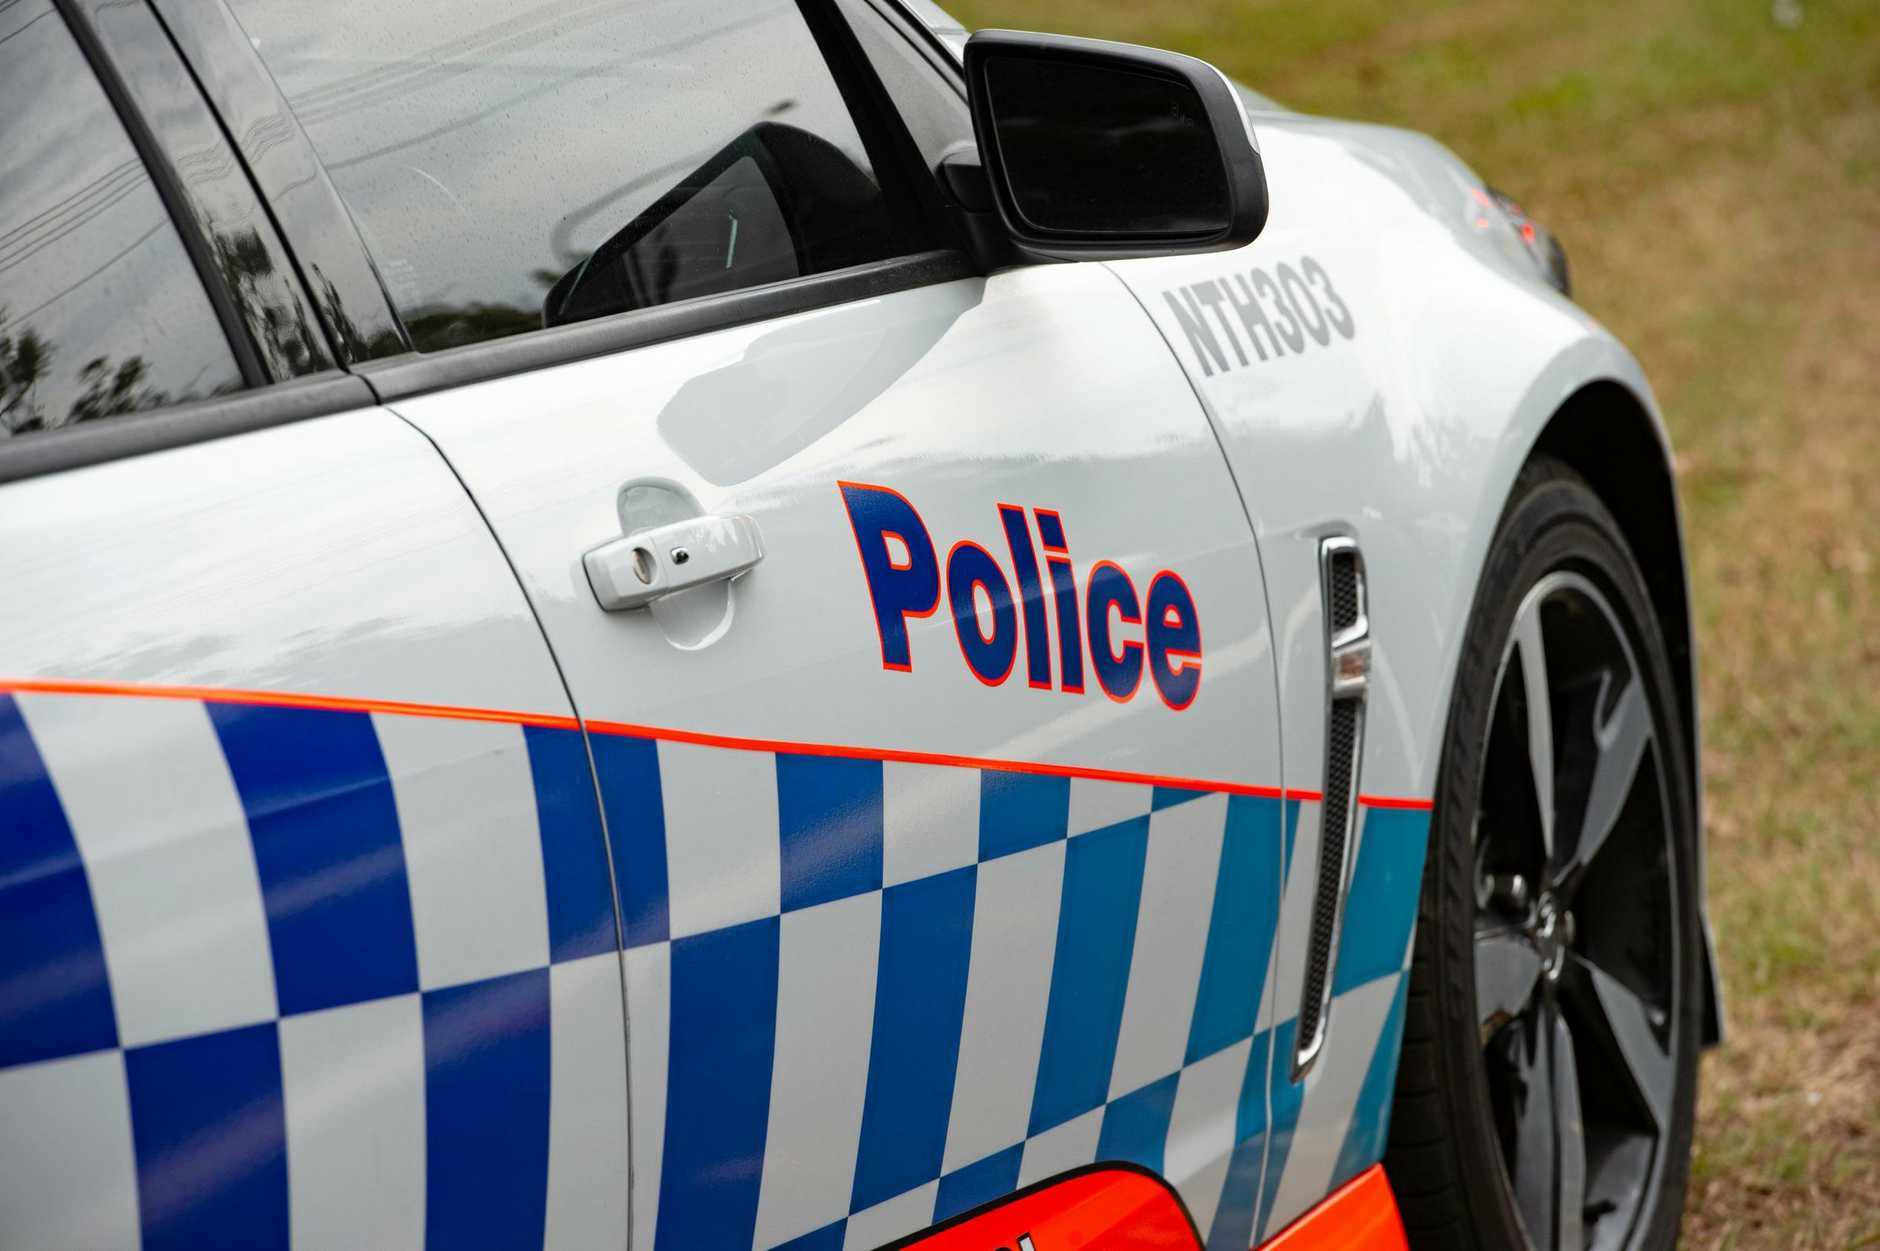 LOOKING: Police are on the hunt for a vehicle operating dangerously on Mackay-Eungella Road.